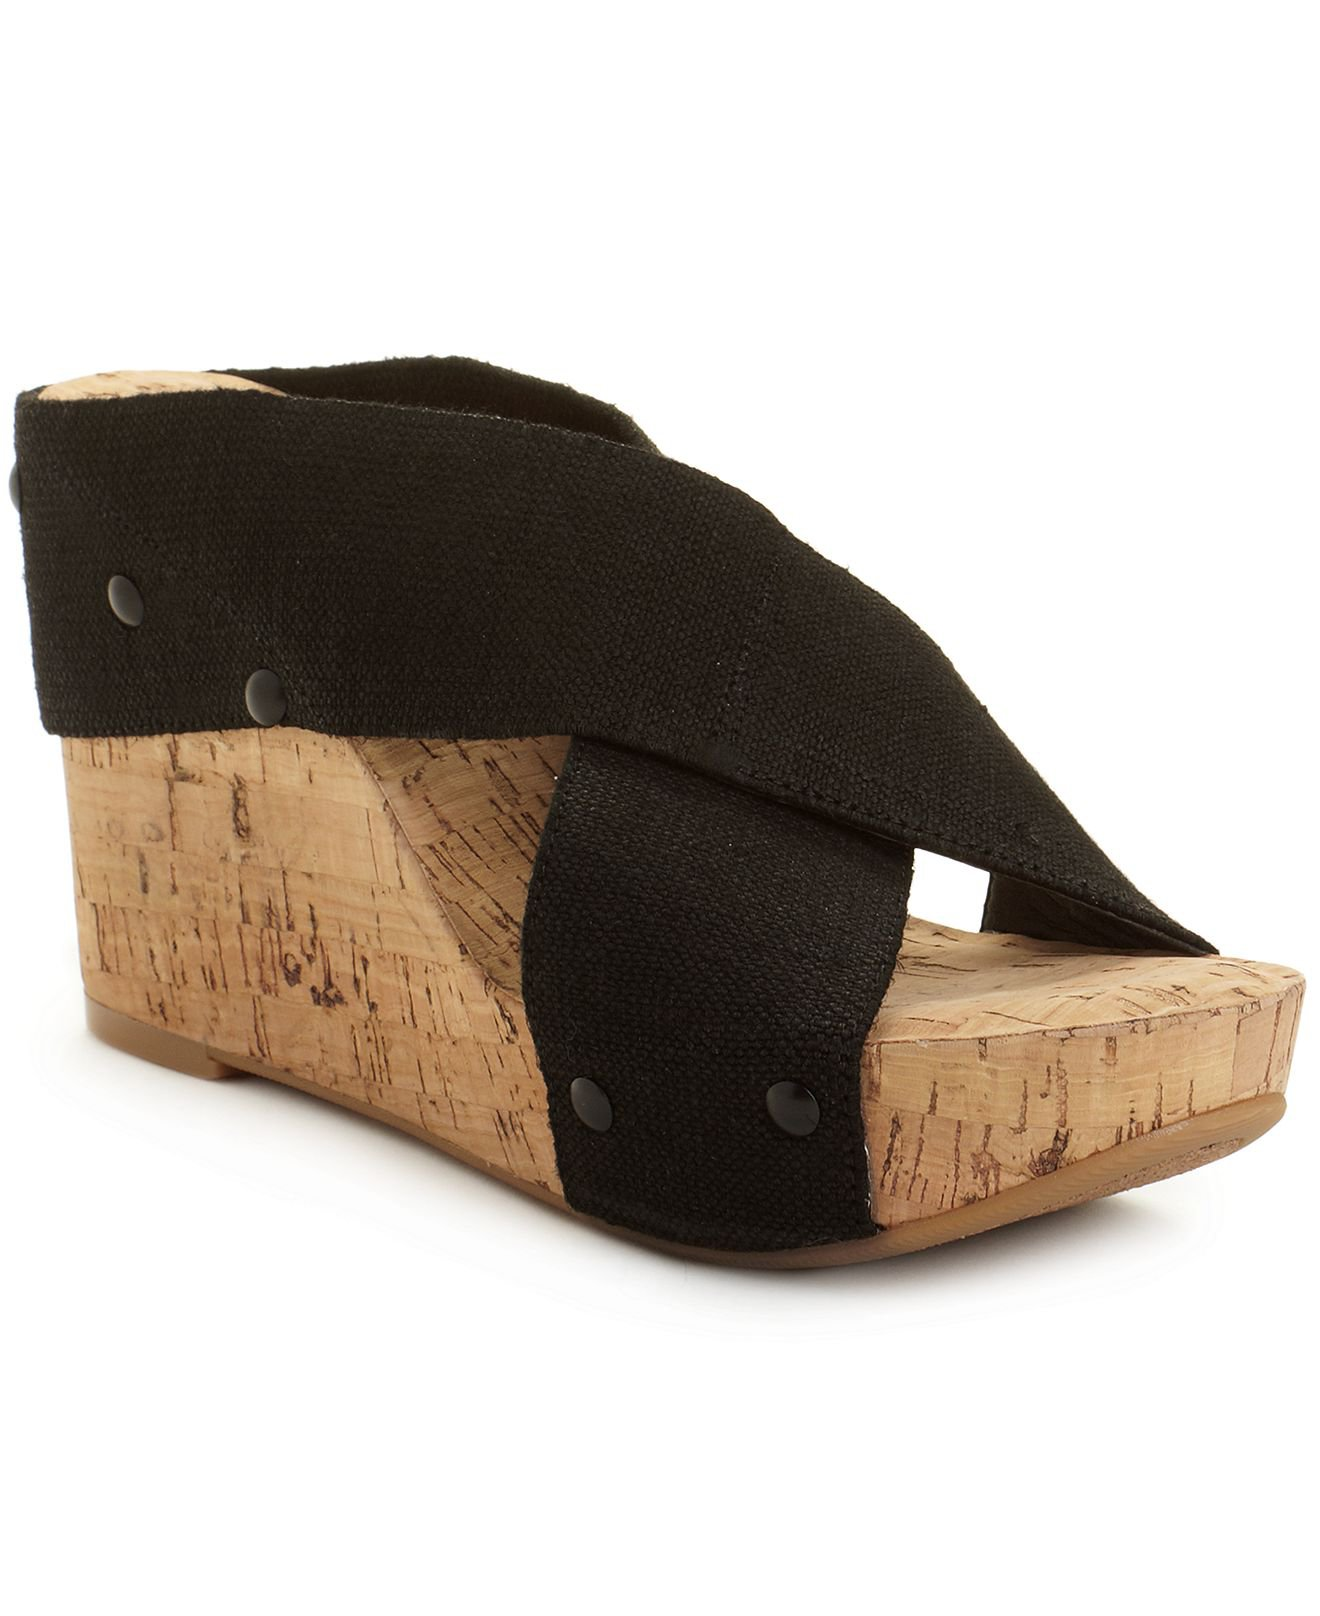 lucky brand shoes miller2 wedge sandals from macys